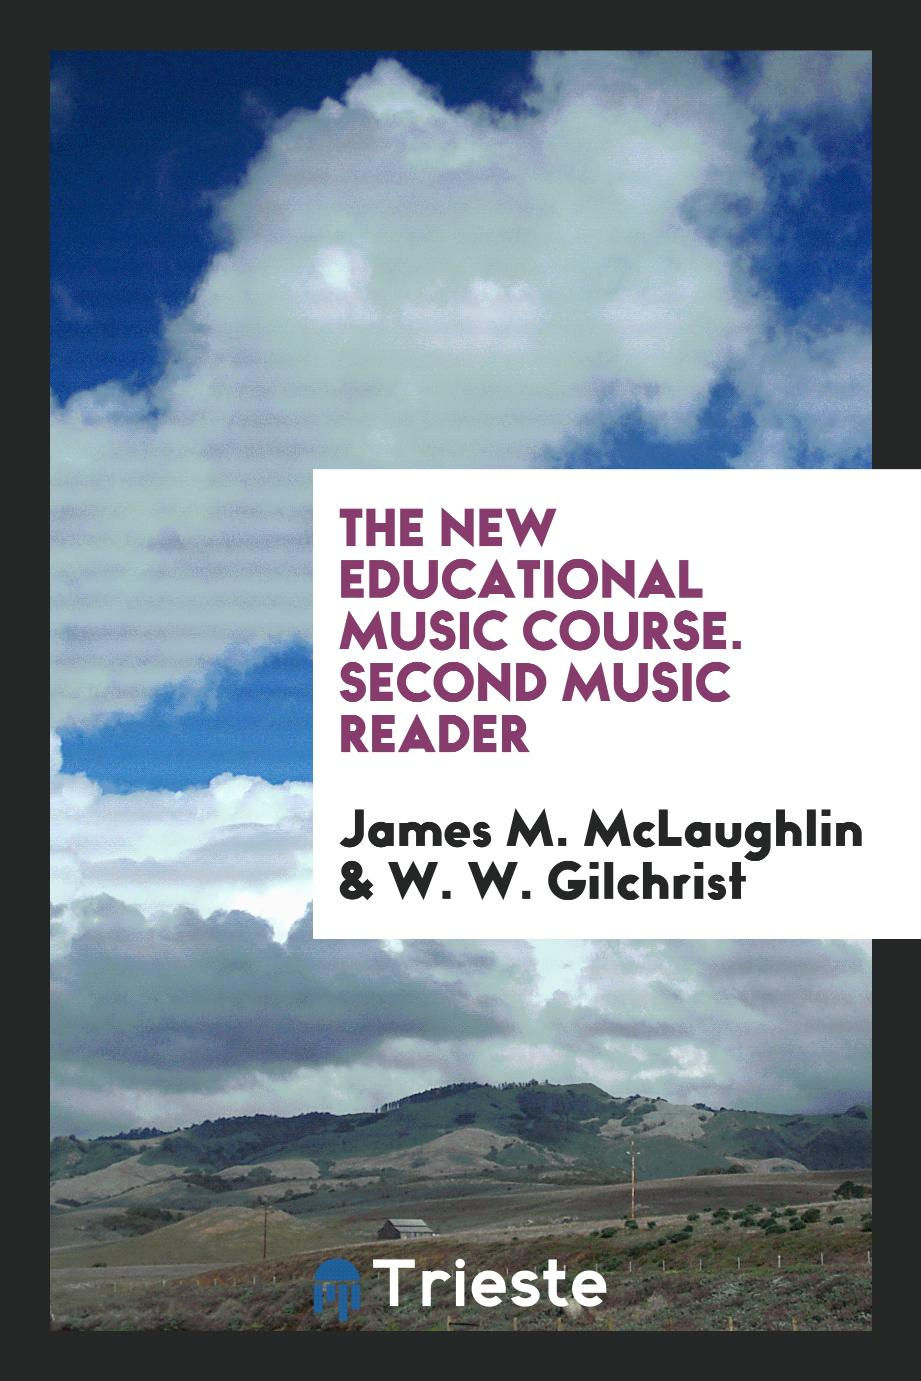 The New Educational Music Course. Second Music Reader